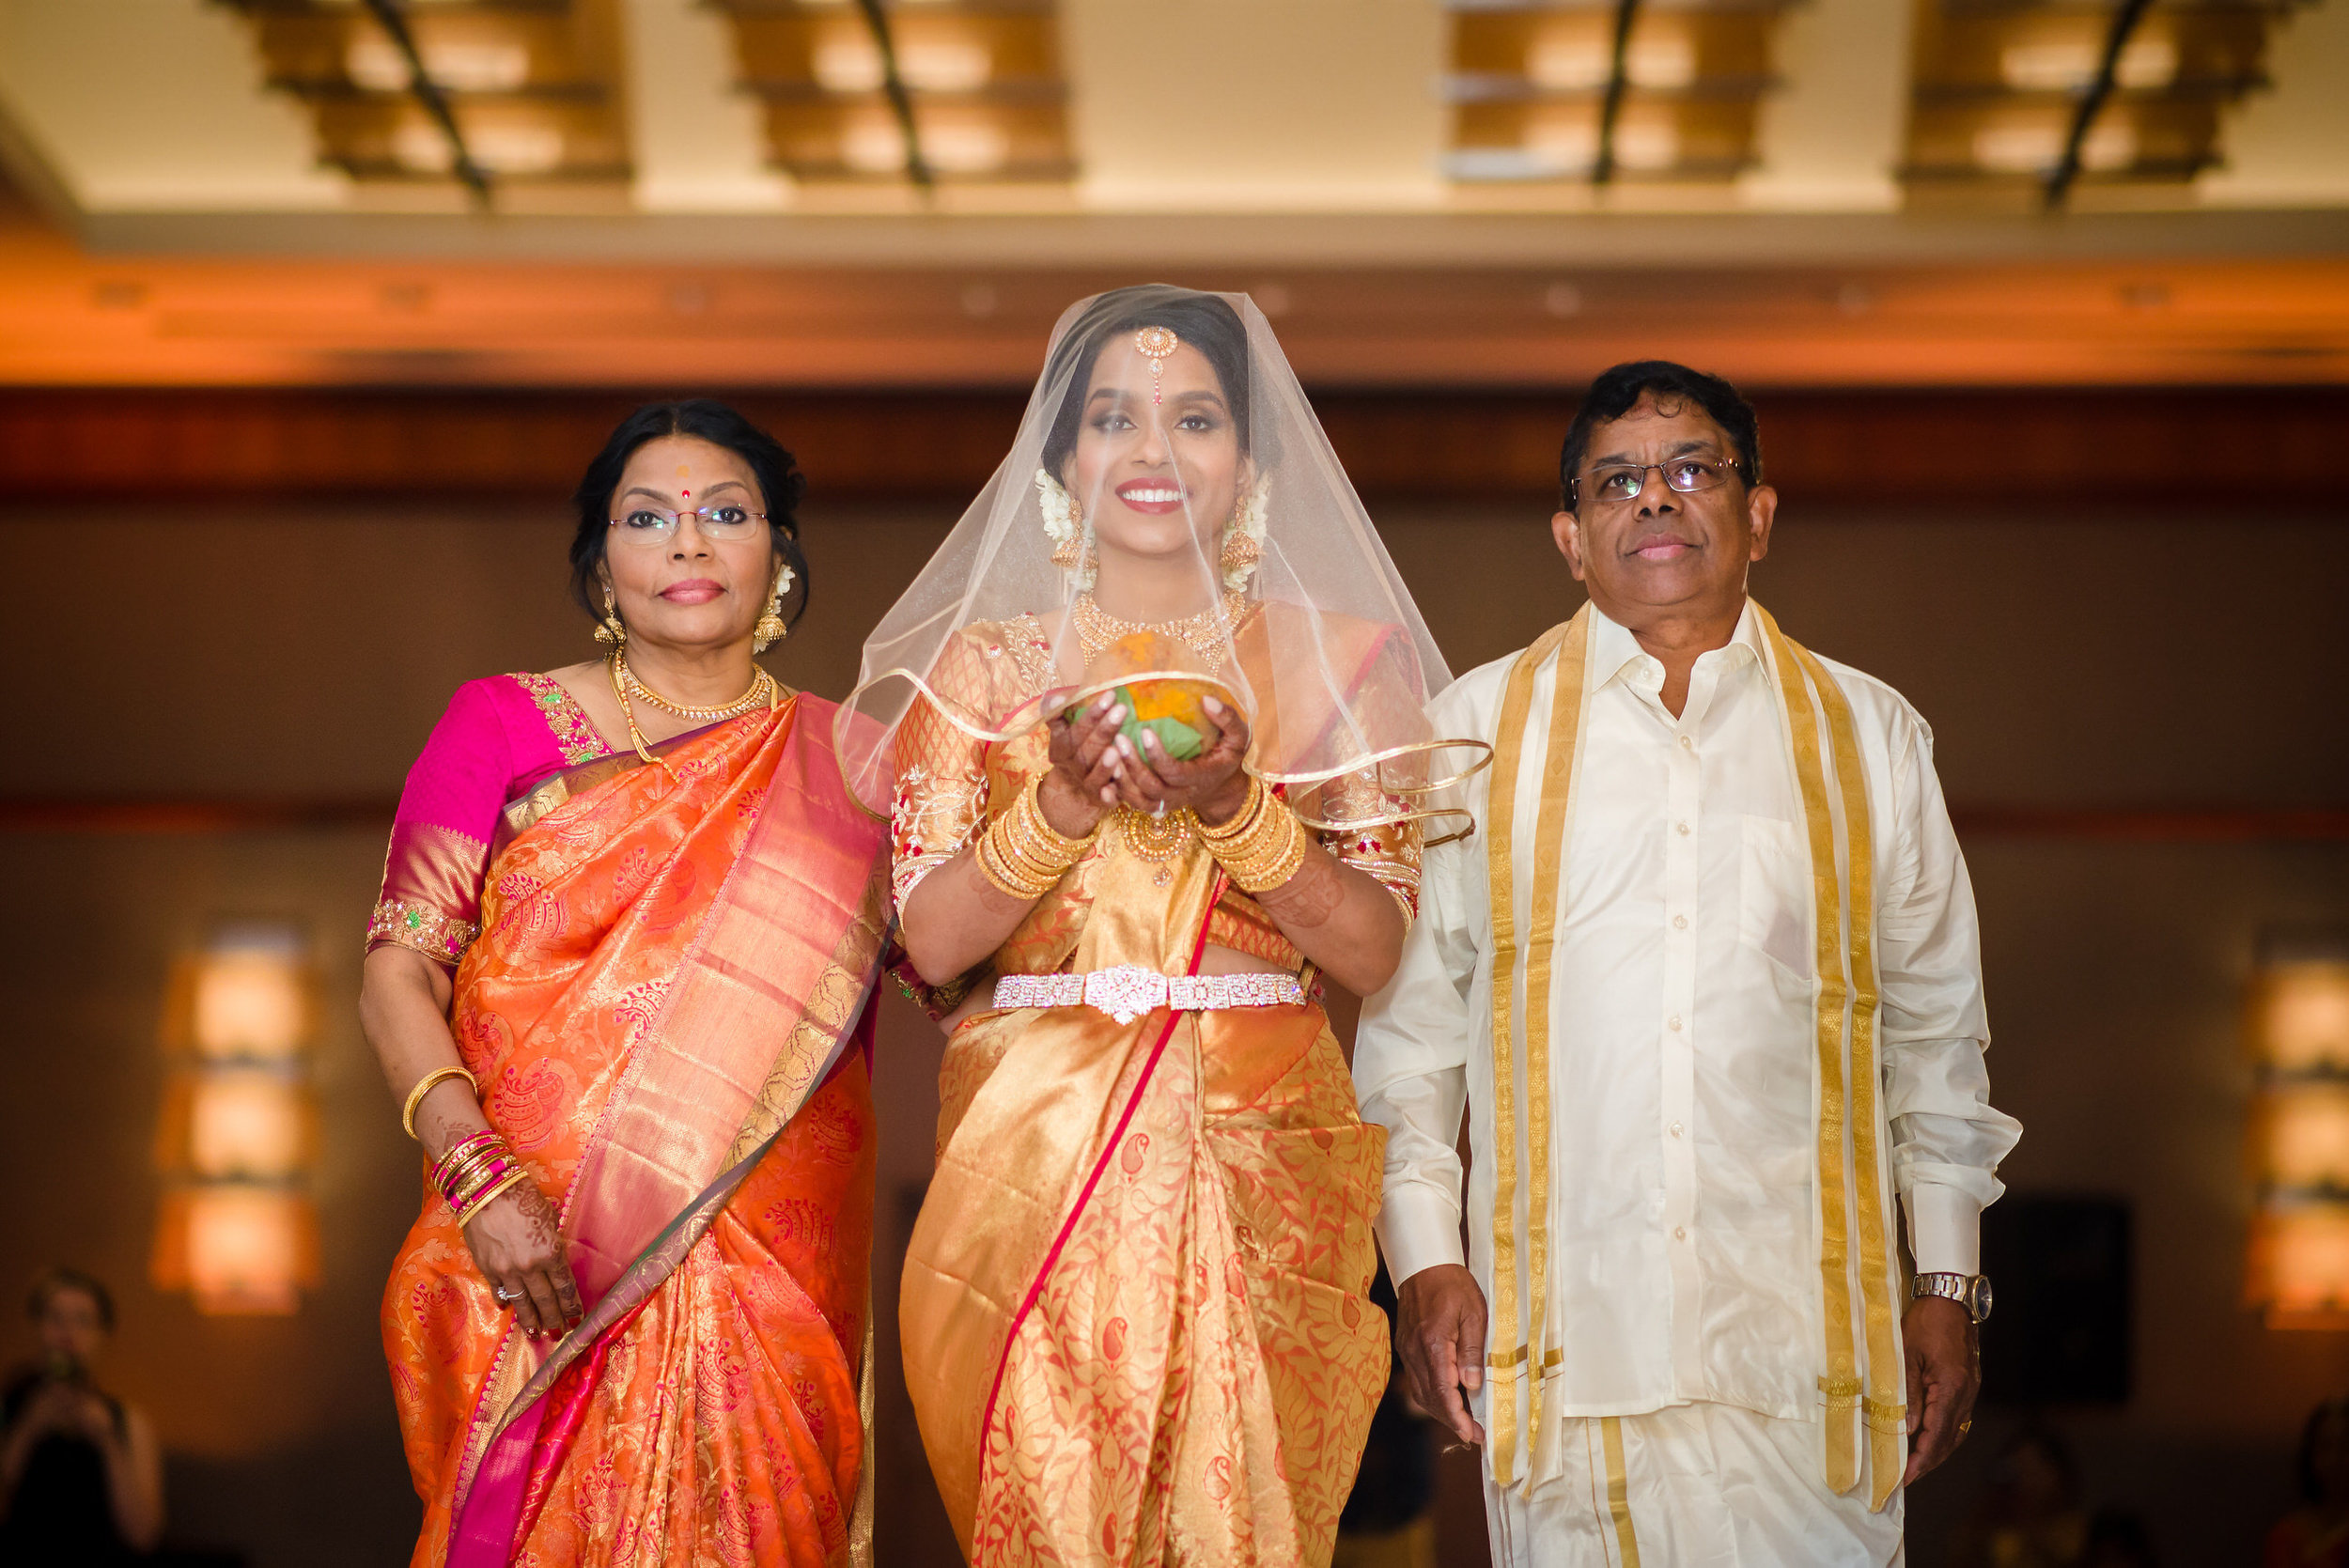 Parneeta-Sravan-Wedding-0615.jpg